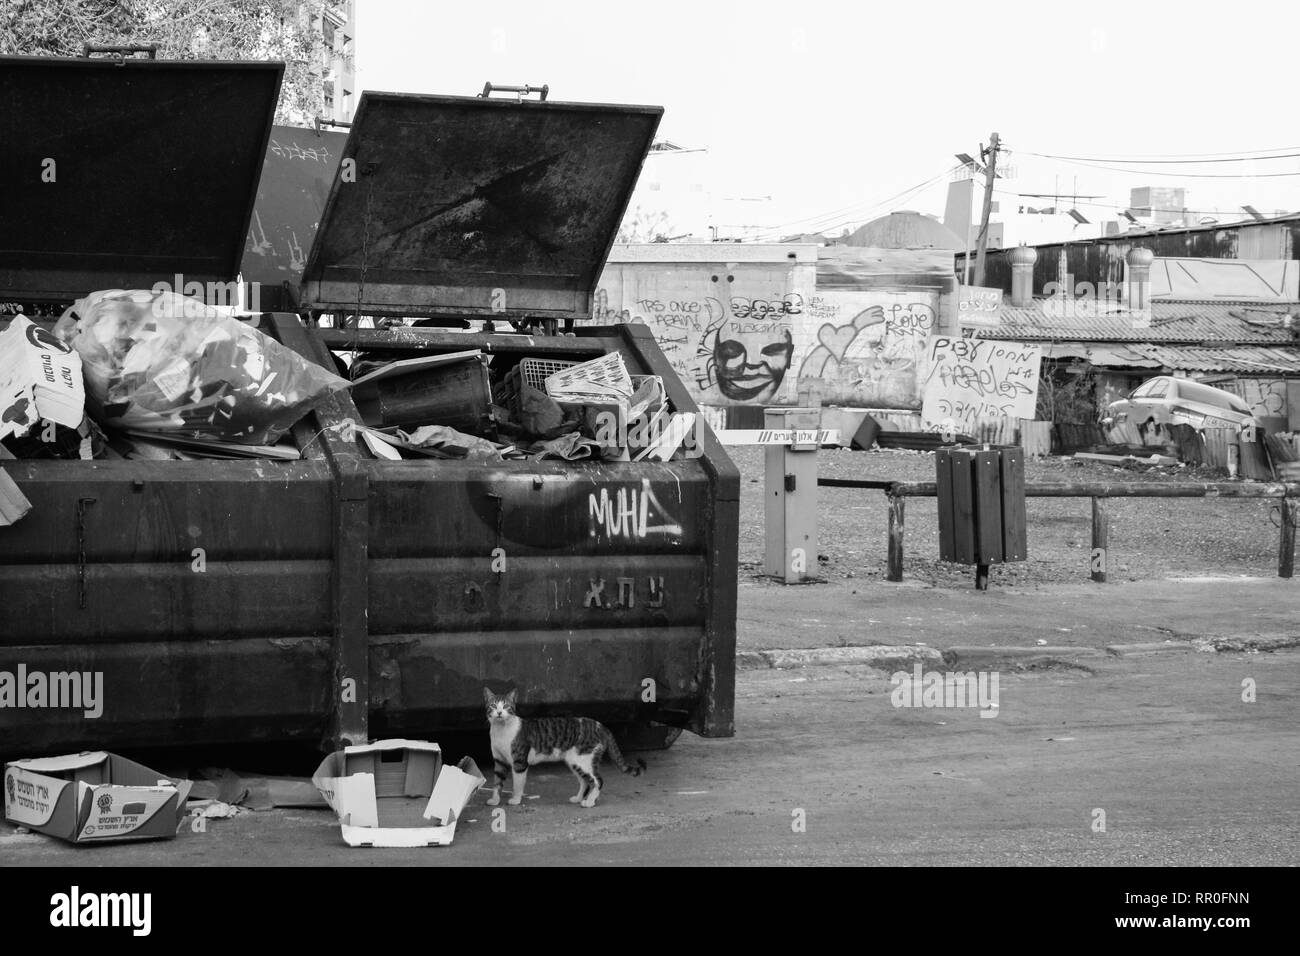 Curious cat in front of a garbage container- Tel Aviv, Israel - Stock Image